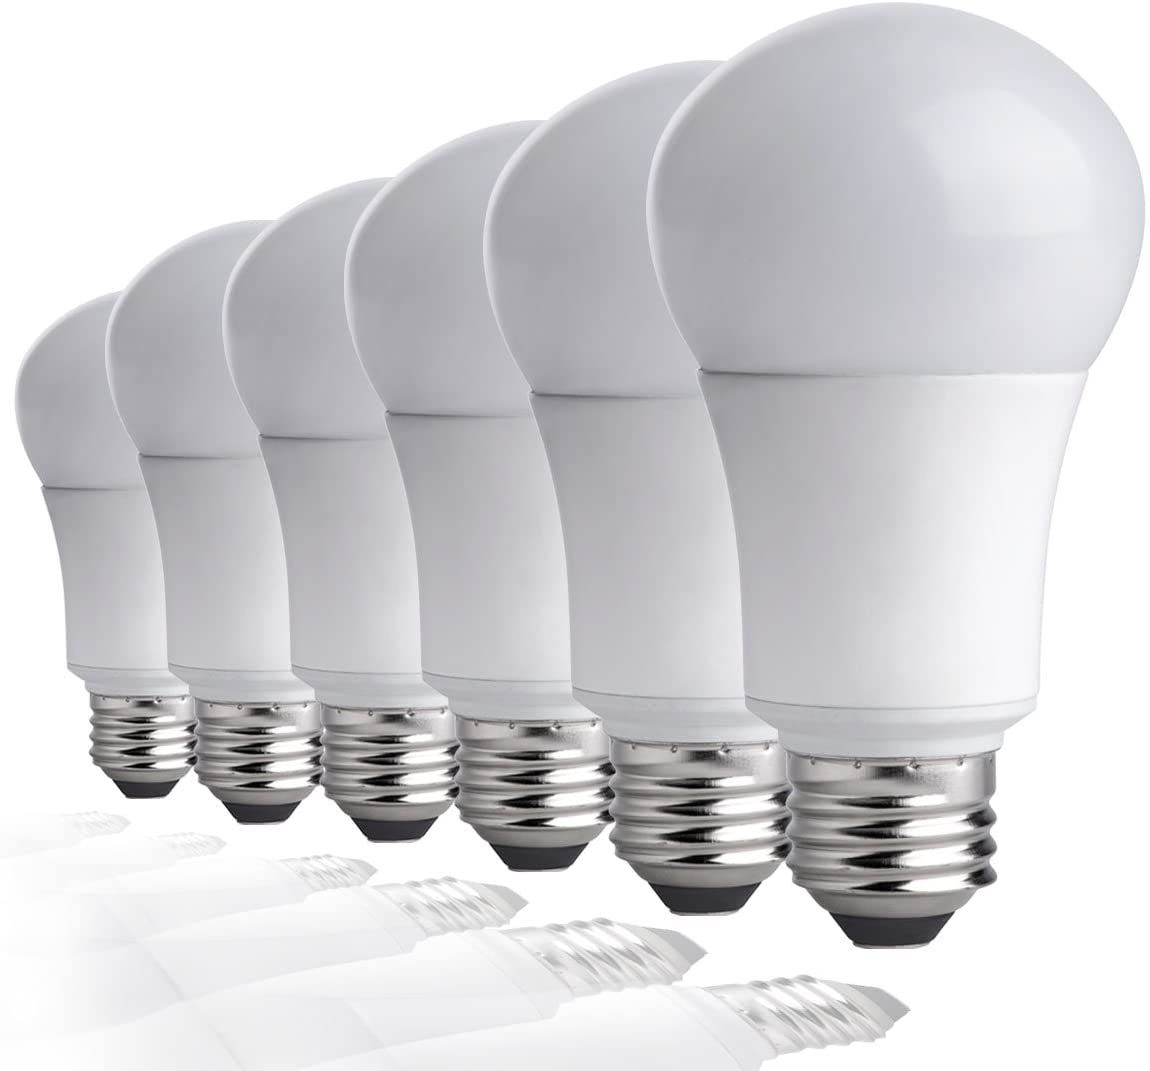 Led A15 Replacement Bulbs TCP Lights up Red 5w 1PK